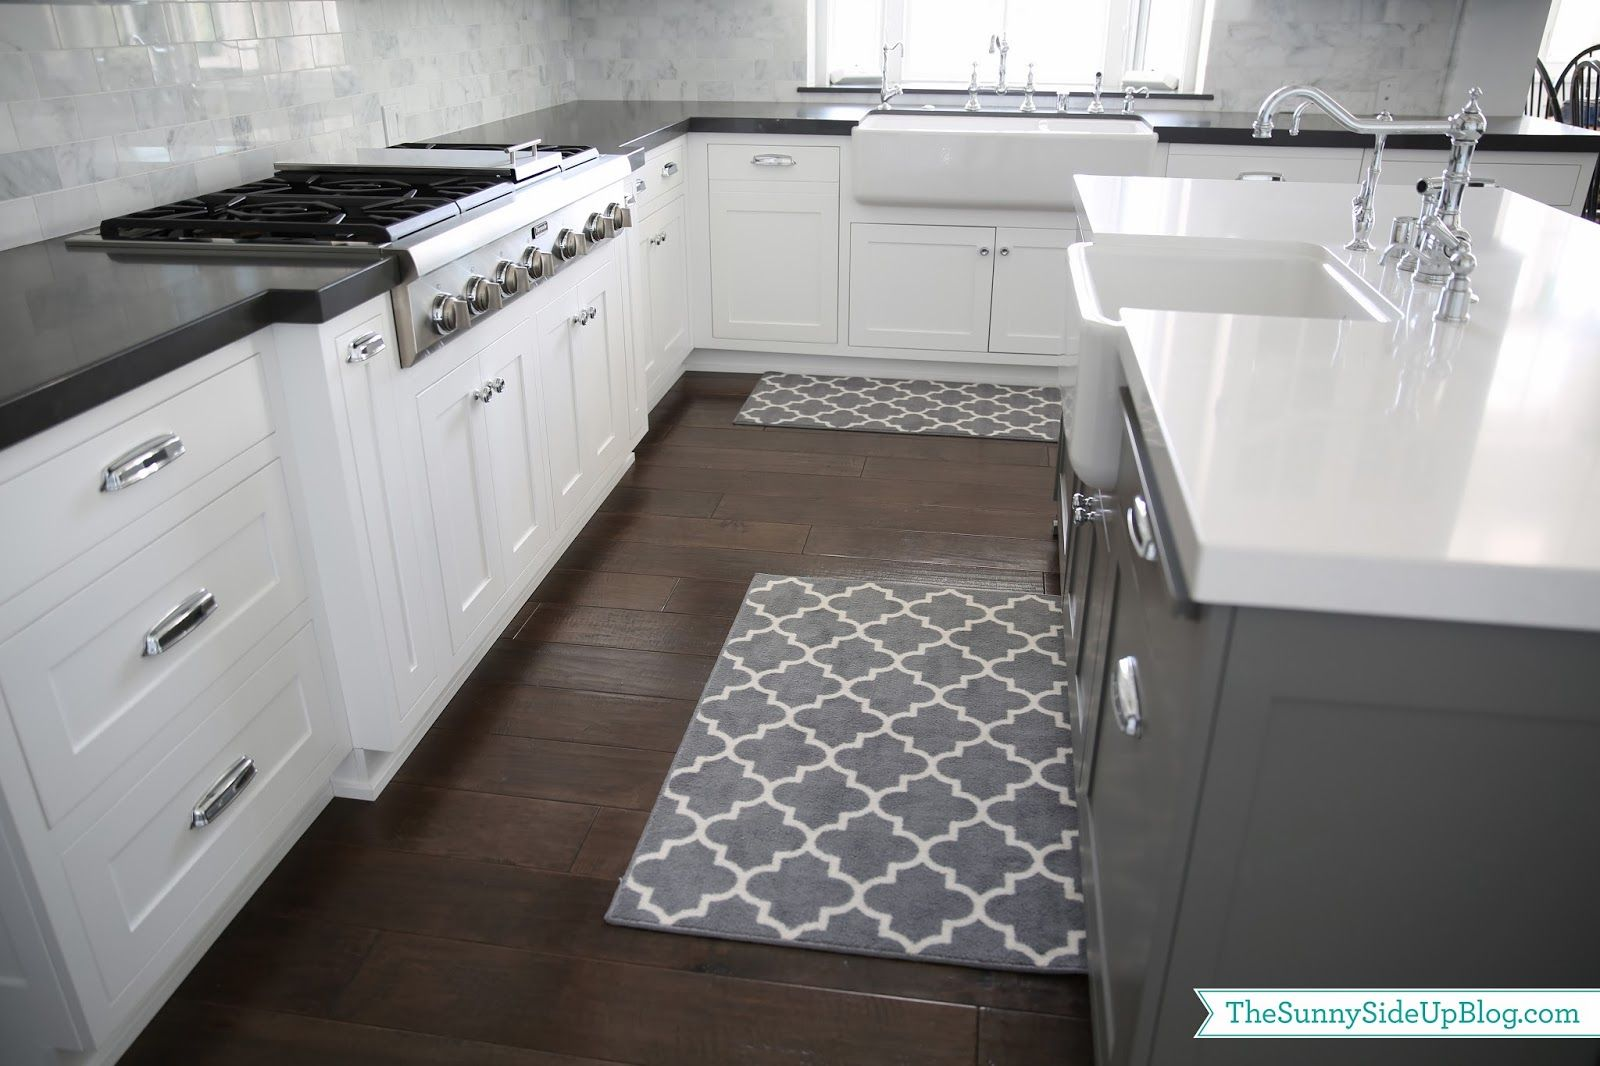 Priorities And New Kitchen Rugs With Images Kitchen Rugs Sink